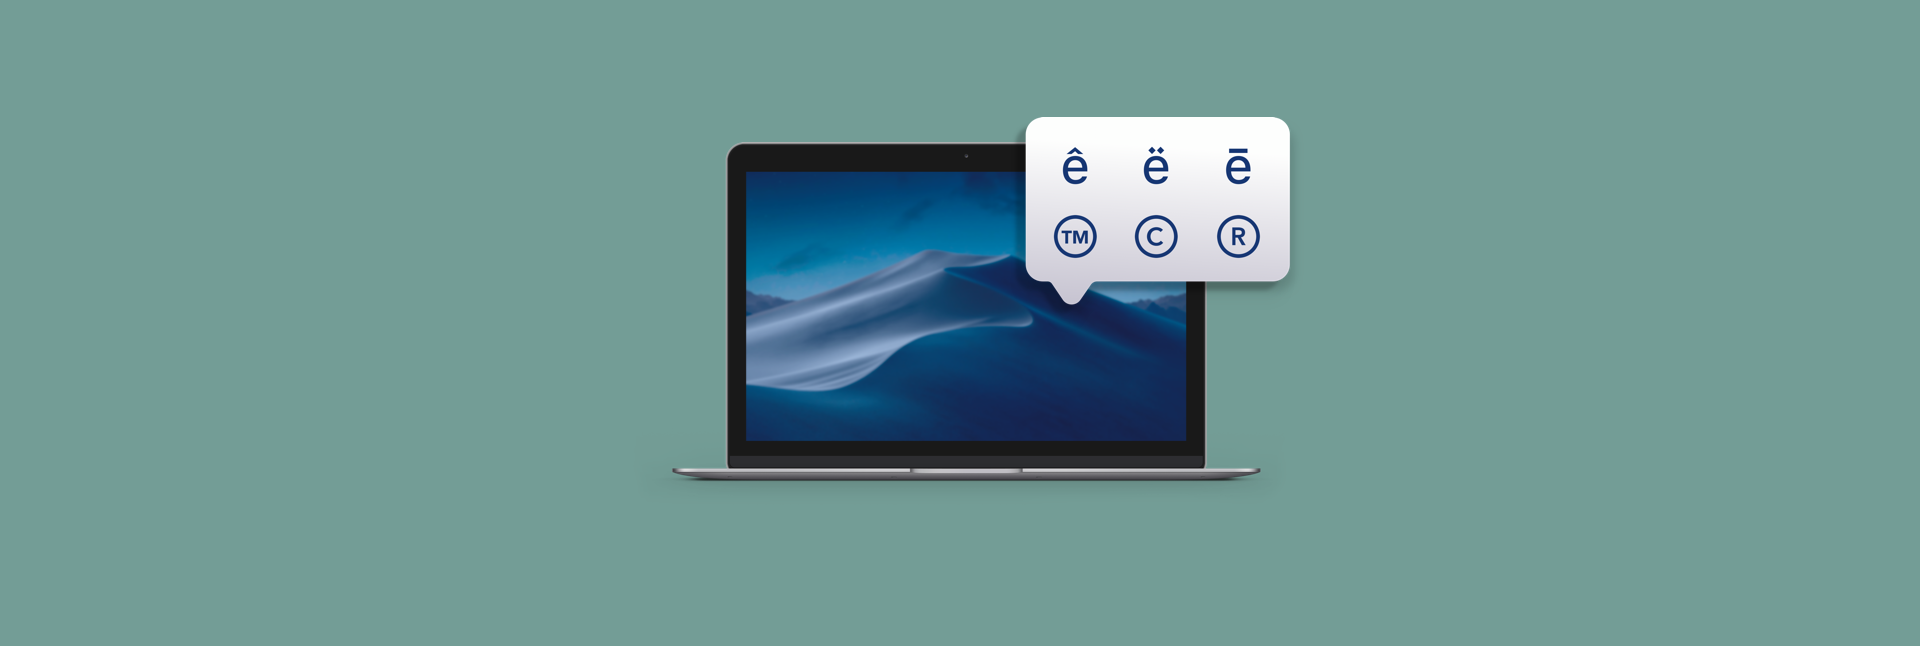 How To Type Hidden Mac Keyboard Symbols And Characters – Setapp